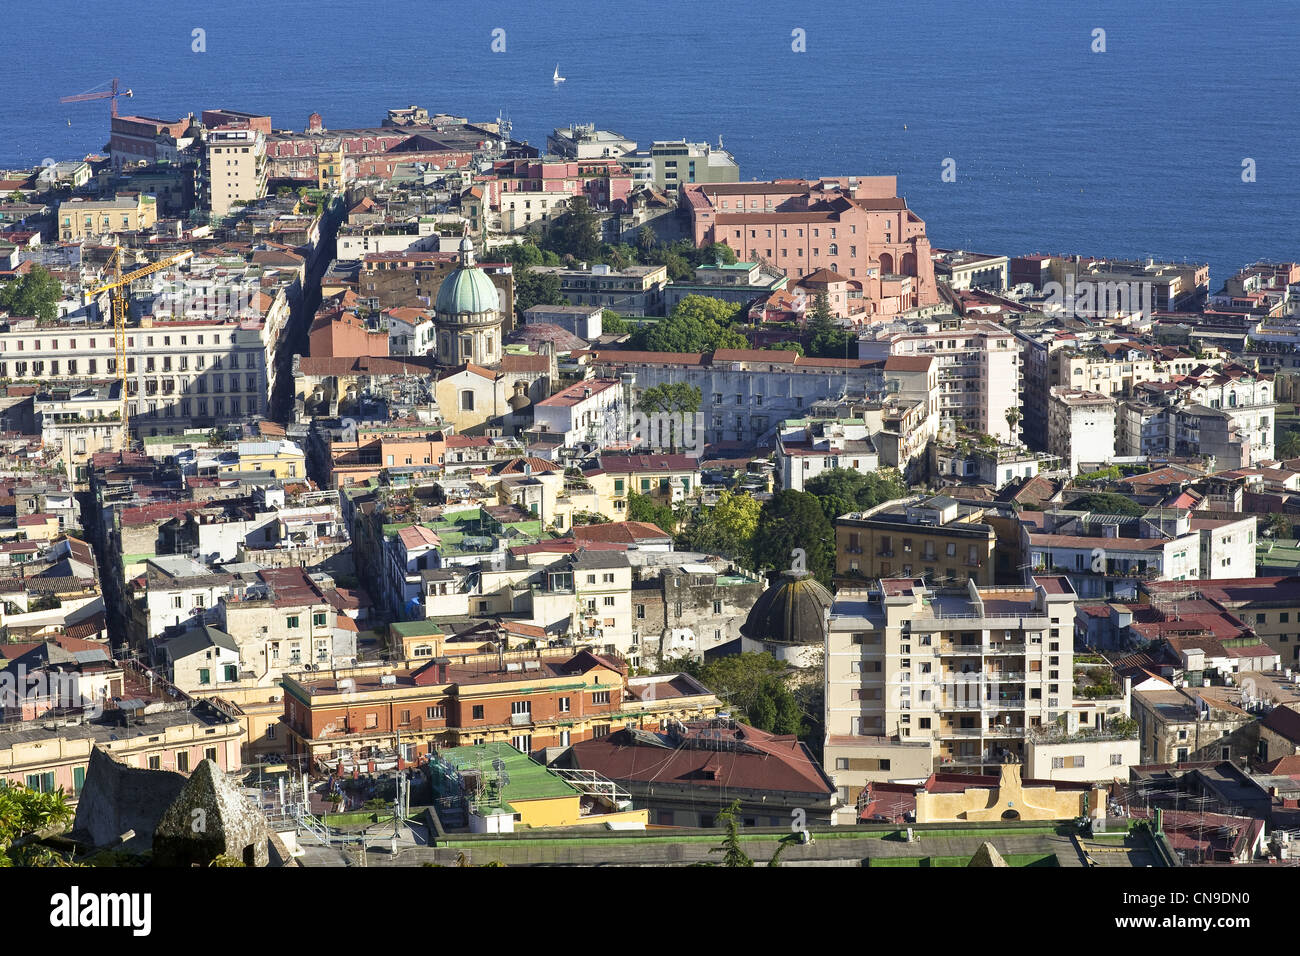 Italy, Campania, Naples, historic center, listed as World Heritage by UNESCO, view from the charterhouse San Martino - Stock Image